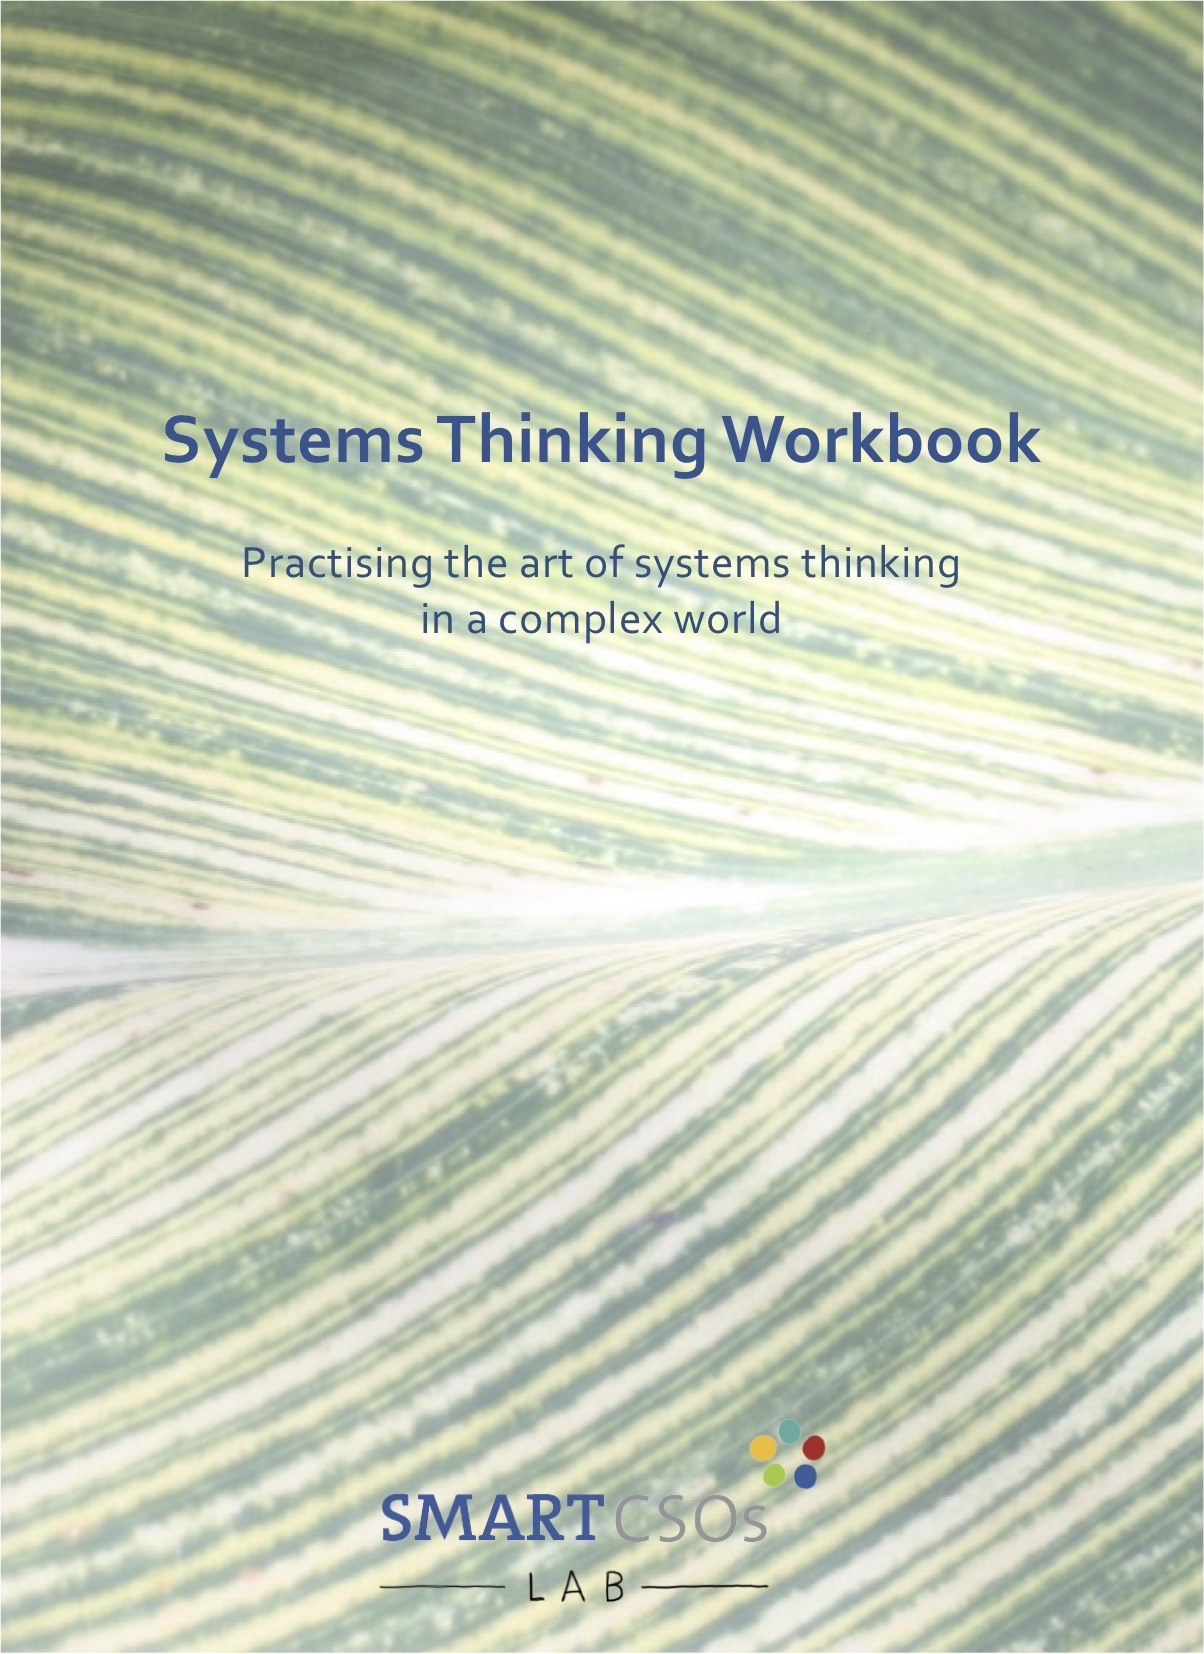 Front cover of the Systems Thinking Workbook